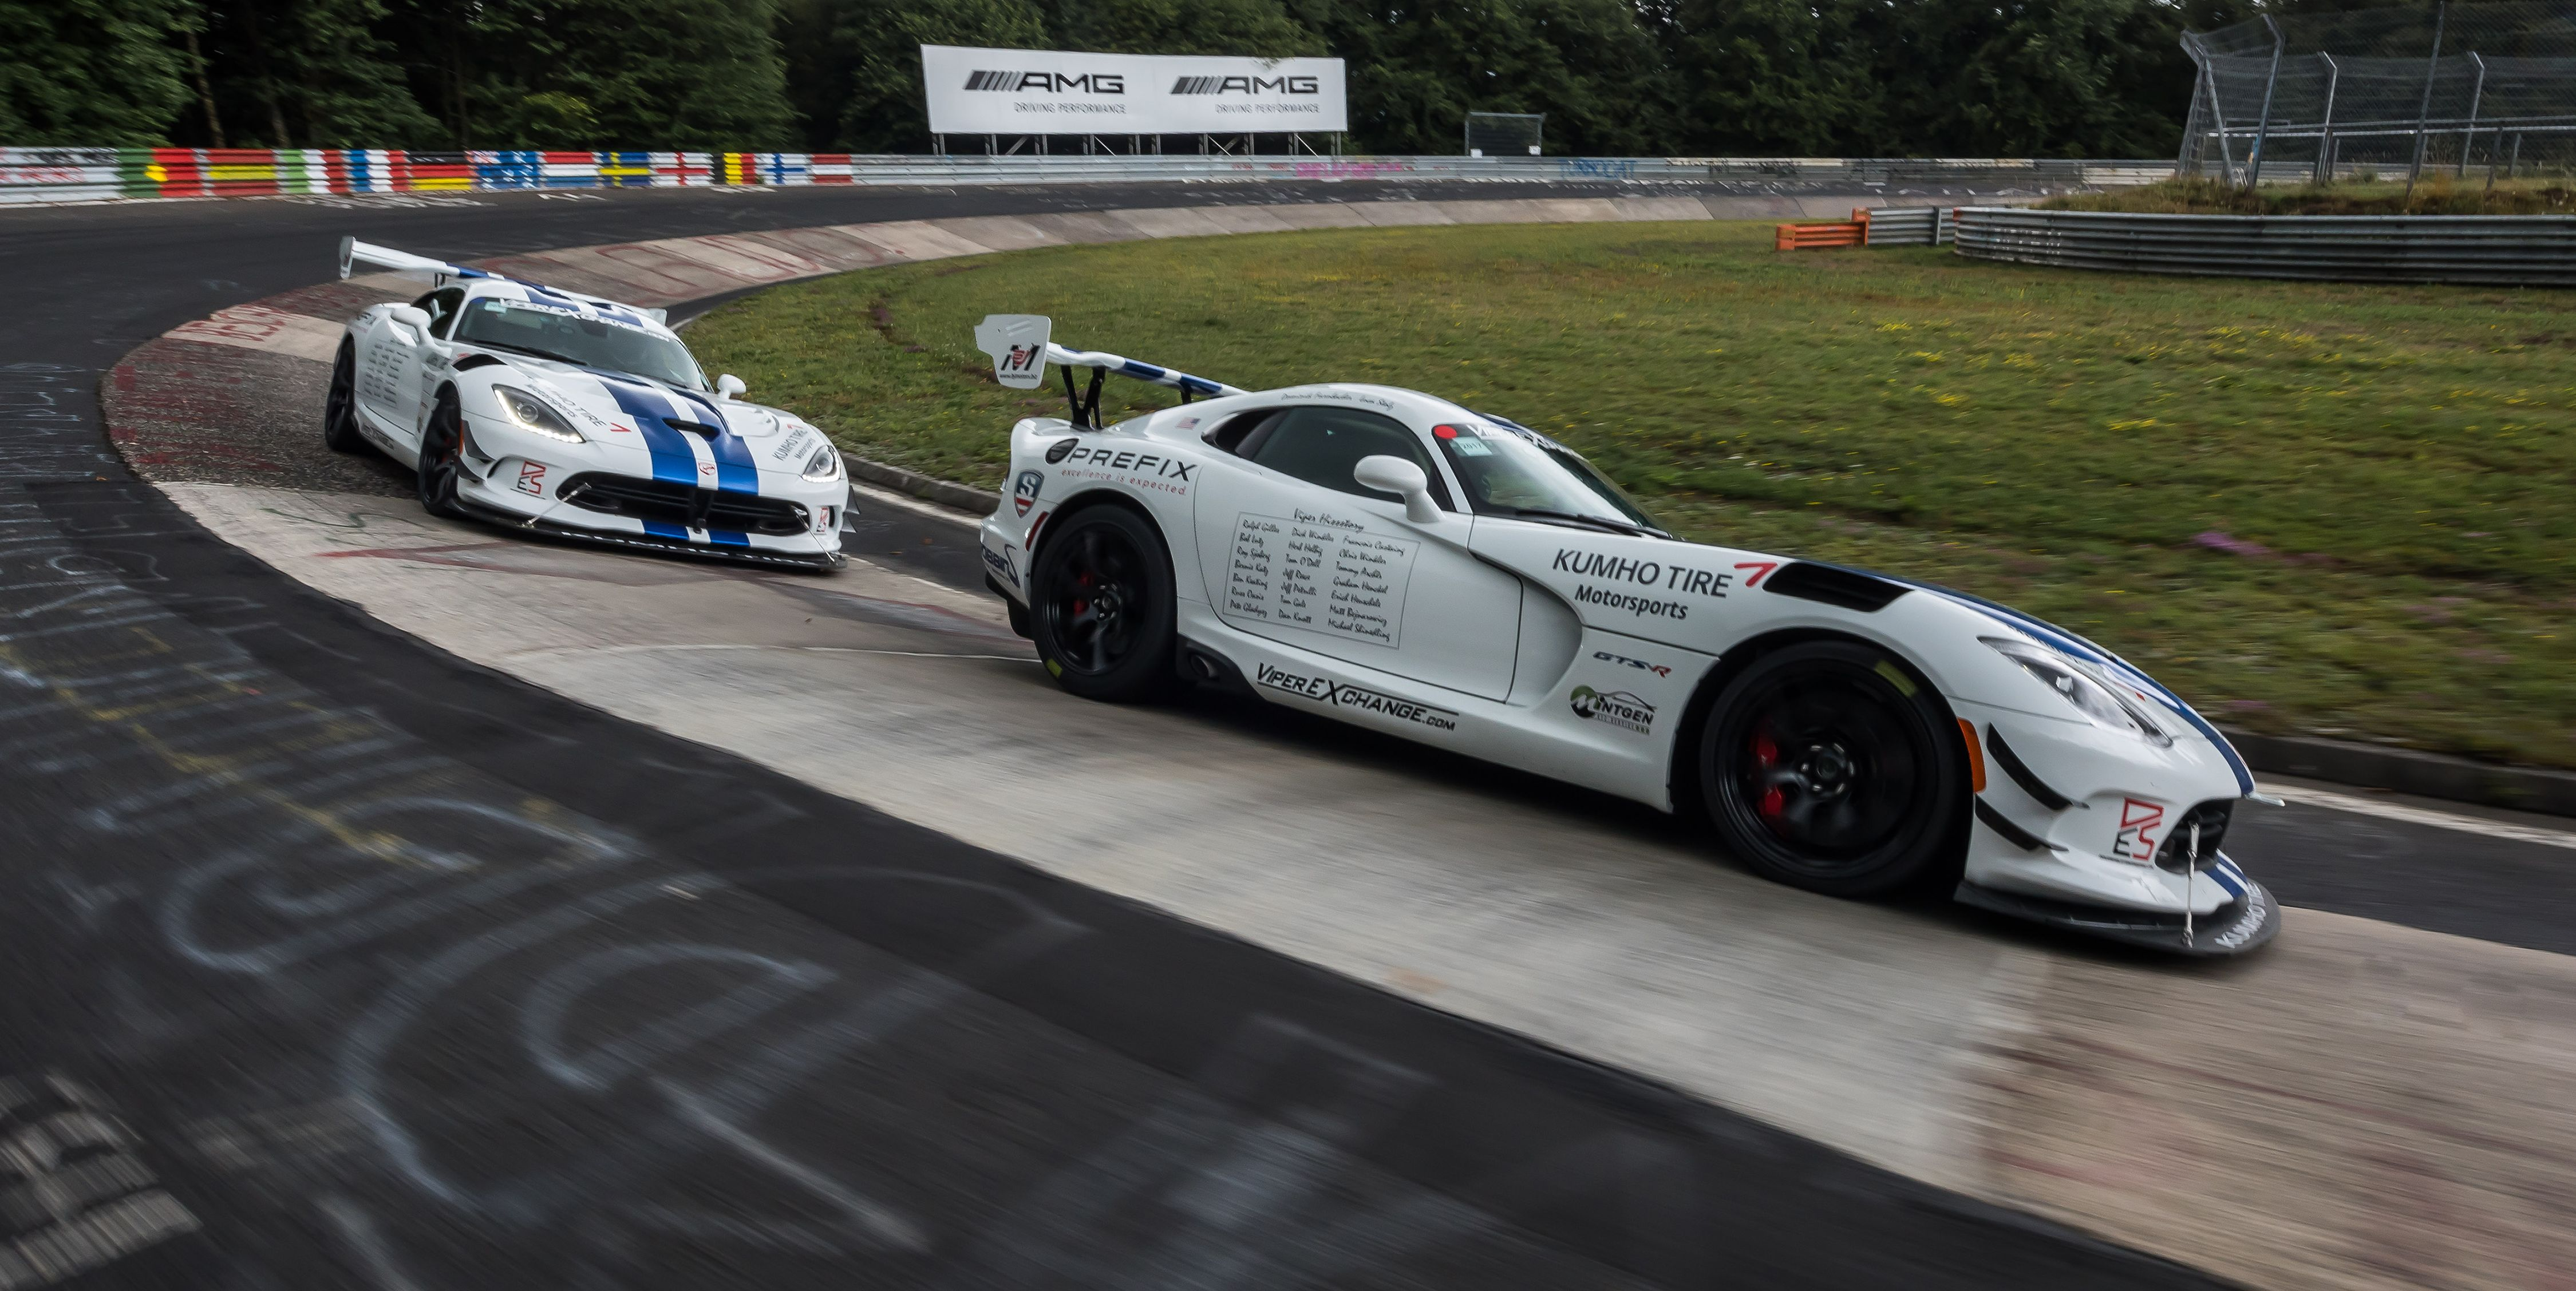 How Viper Fans Crowdfunded the Nurburgring Record Dodge Never Attempted